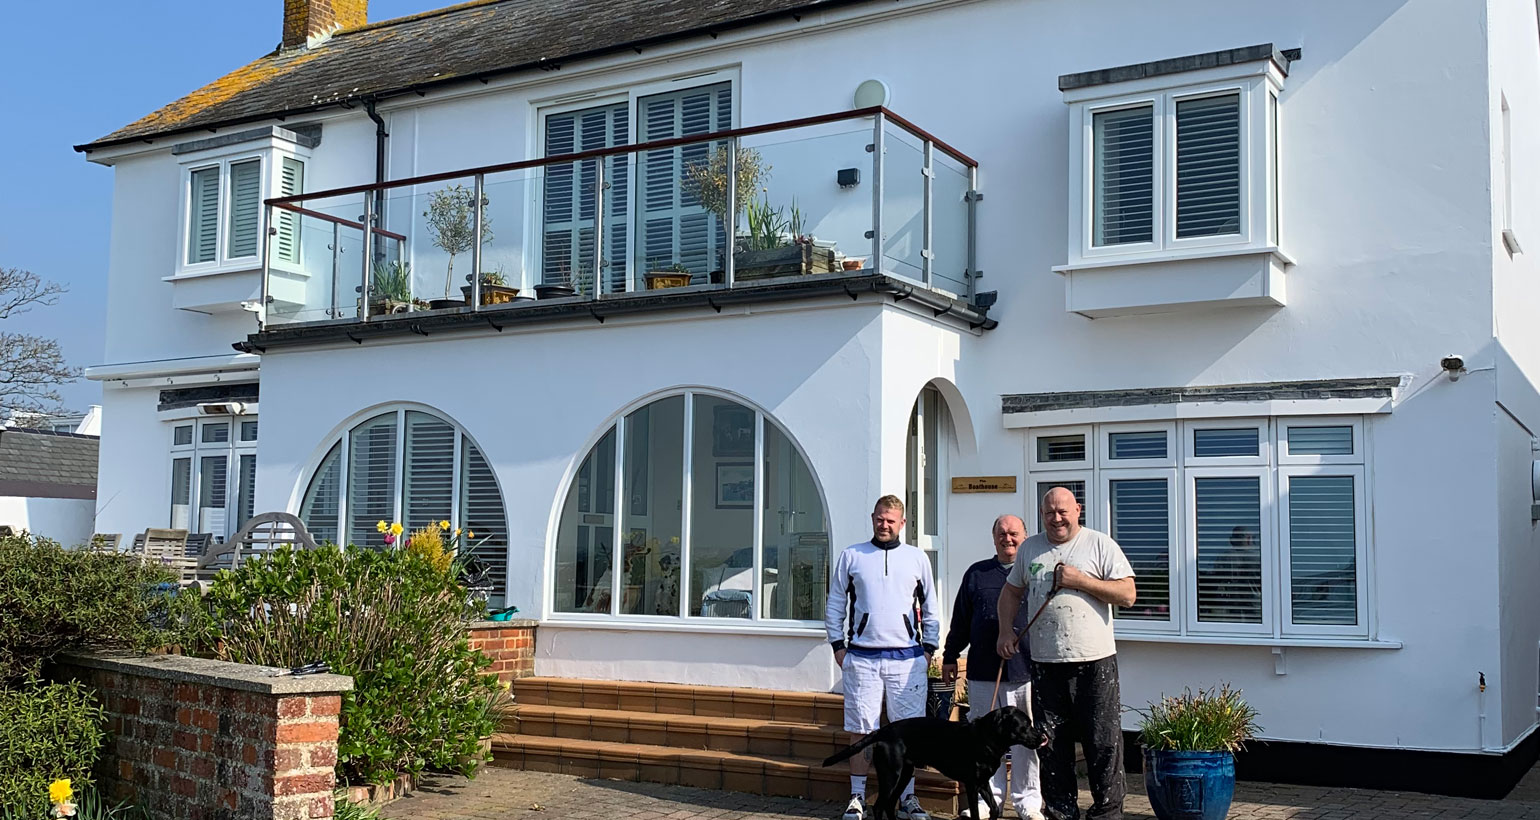 Featured Exterior Painting Contract at Mudeford for Local Councillor - Emerald Painters Portfolio